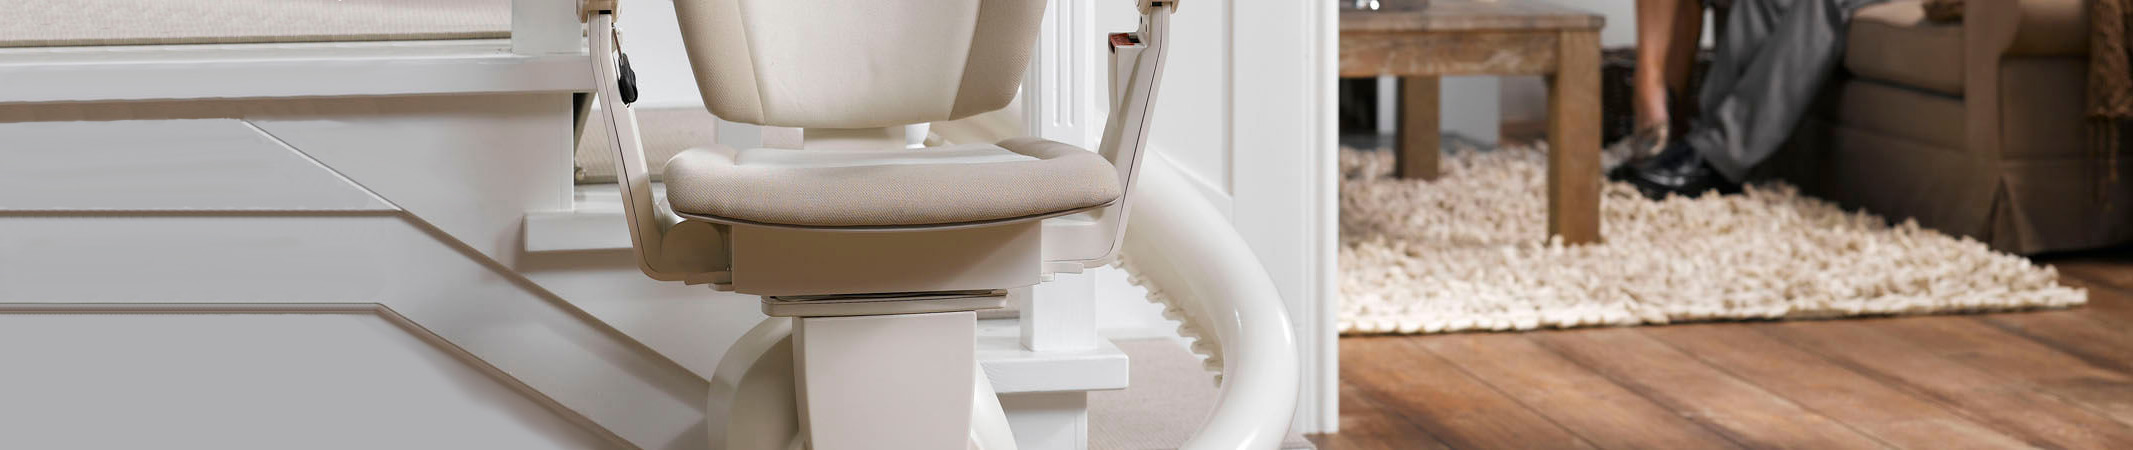 stairlifts Leicester, stairlifts Coventry, stairlifts Birmingham, stairlifts Nottingham, stairlifts Northampton